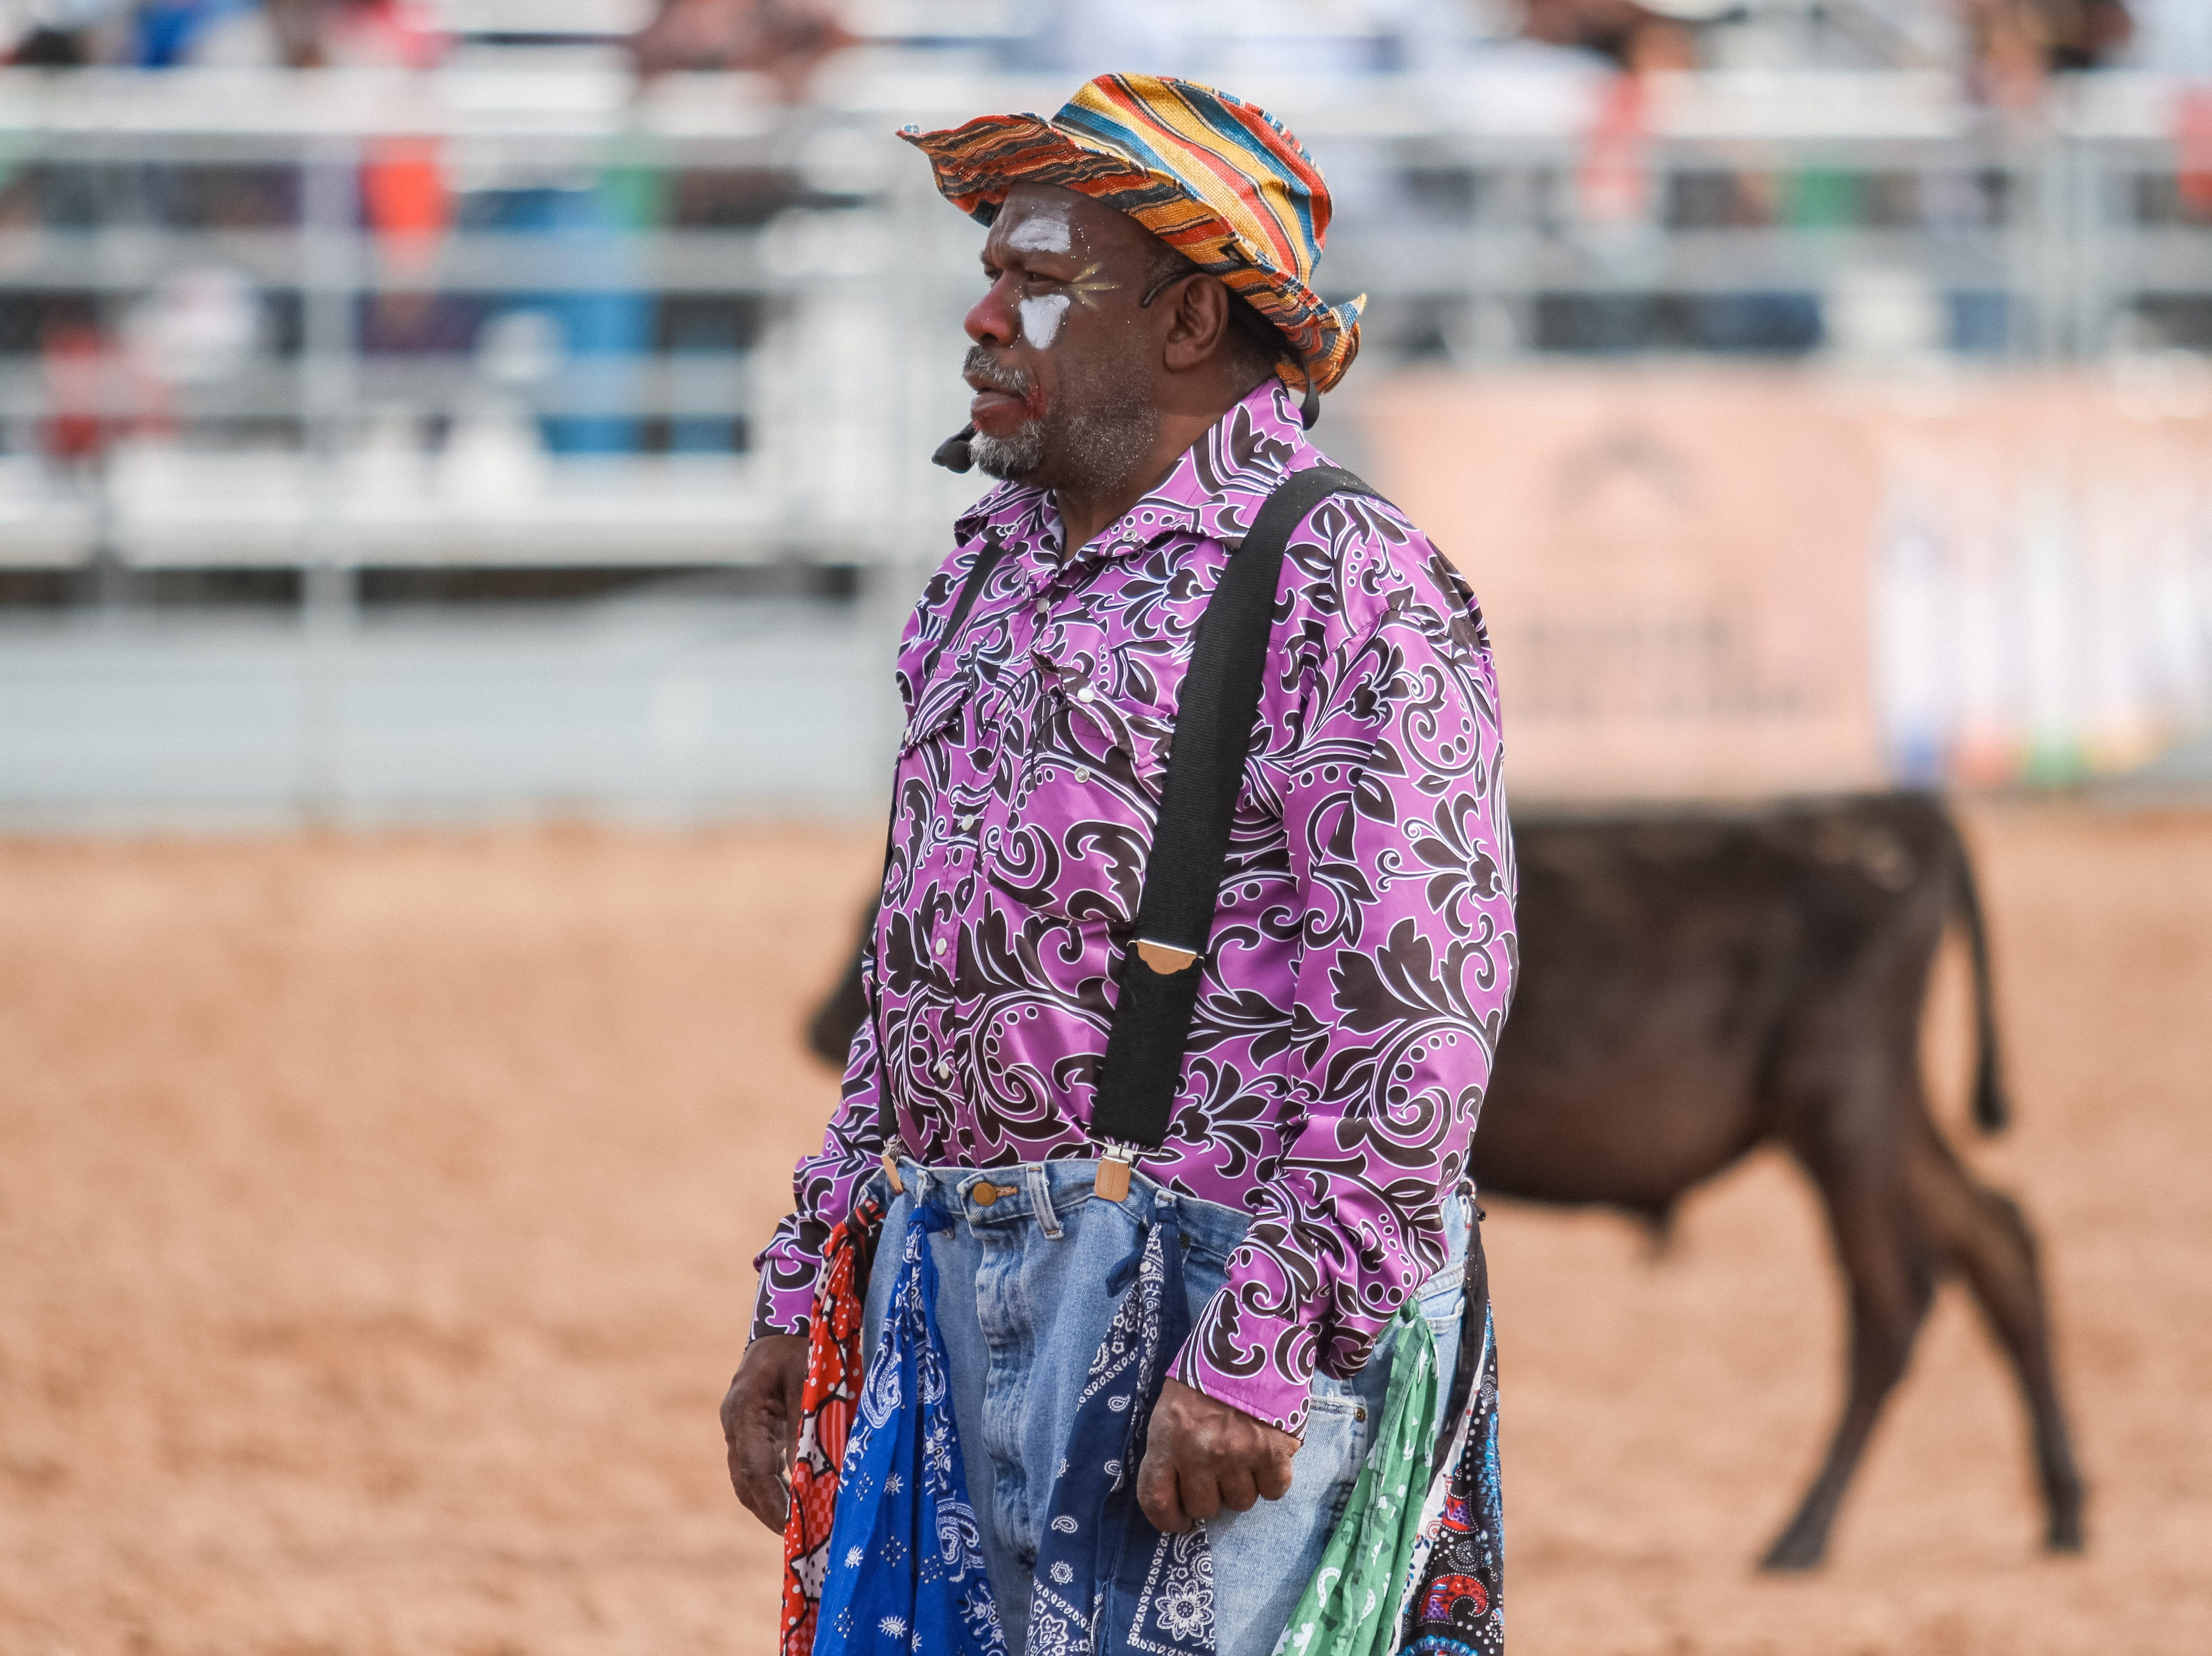 Rodeo clown Avery Ford entertains the crowd at the Arizona Black Rodeo in Chandler, Arizona on Saturday, March 9, 2019.